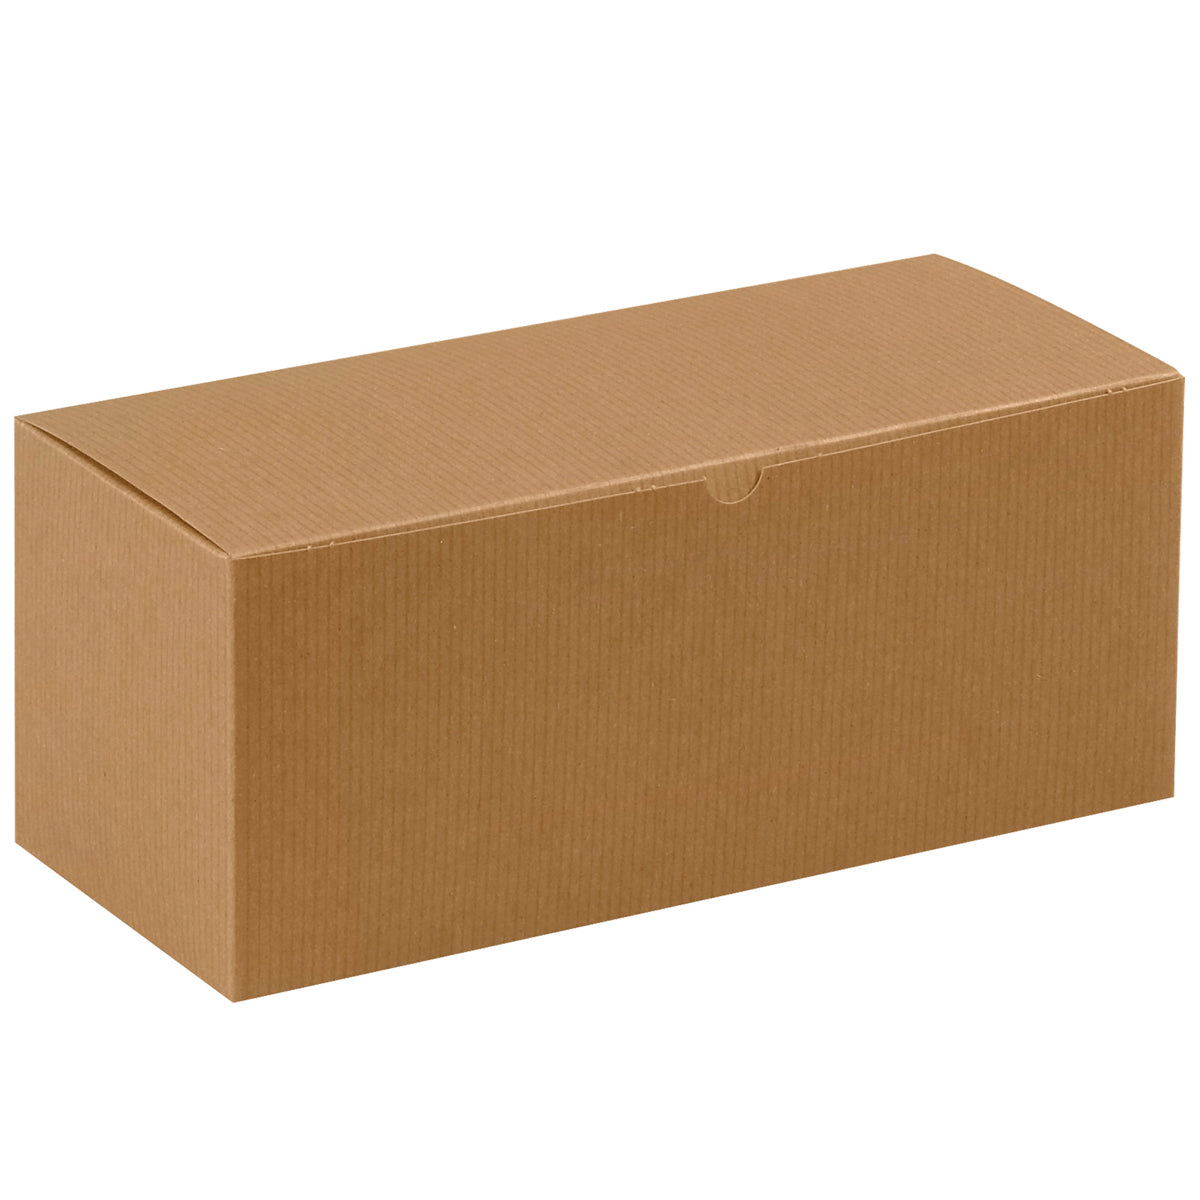 14 X 6 X 6 Kraft Brown Gift Box 50 Case